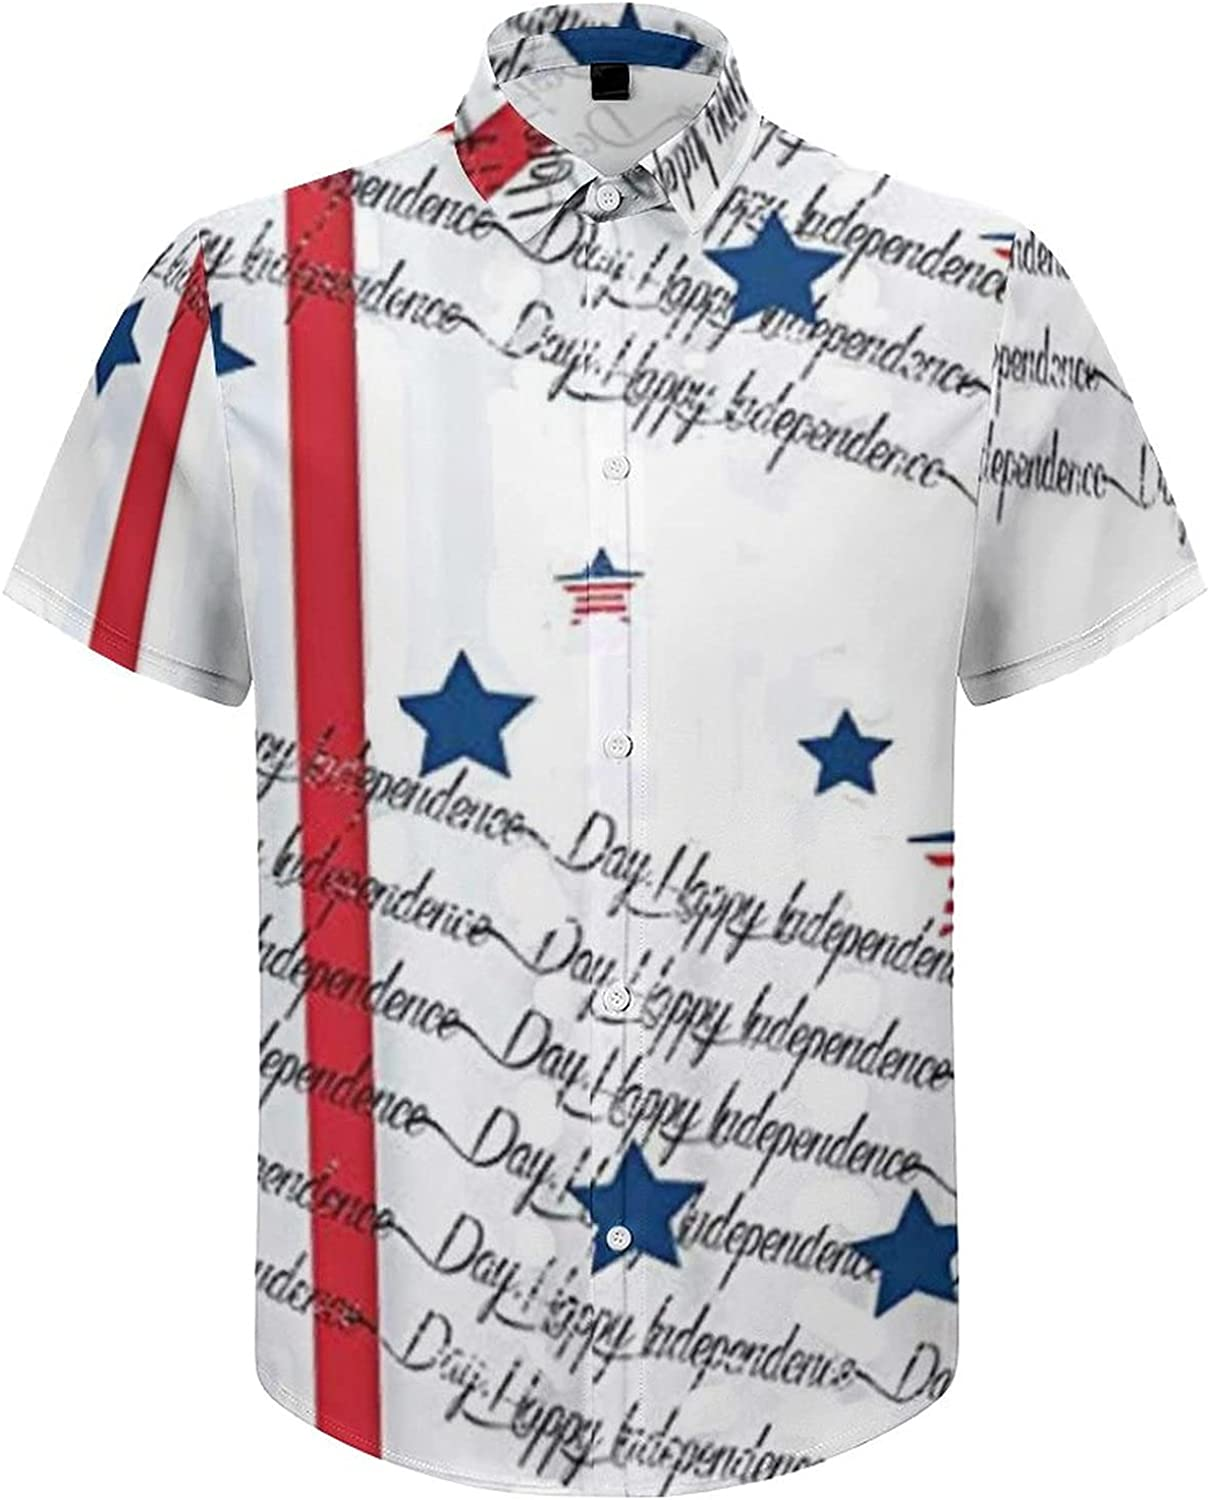 Men's Short Sleeve Button Down Shirt Fourth of July Independence Day Summer Shirts